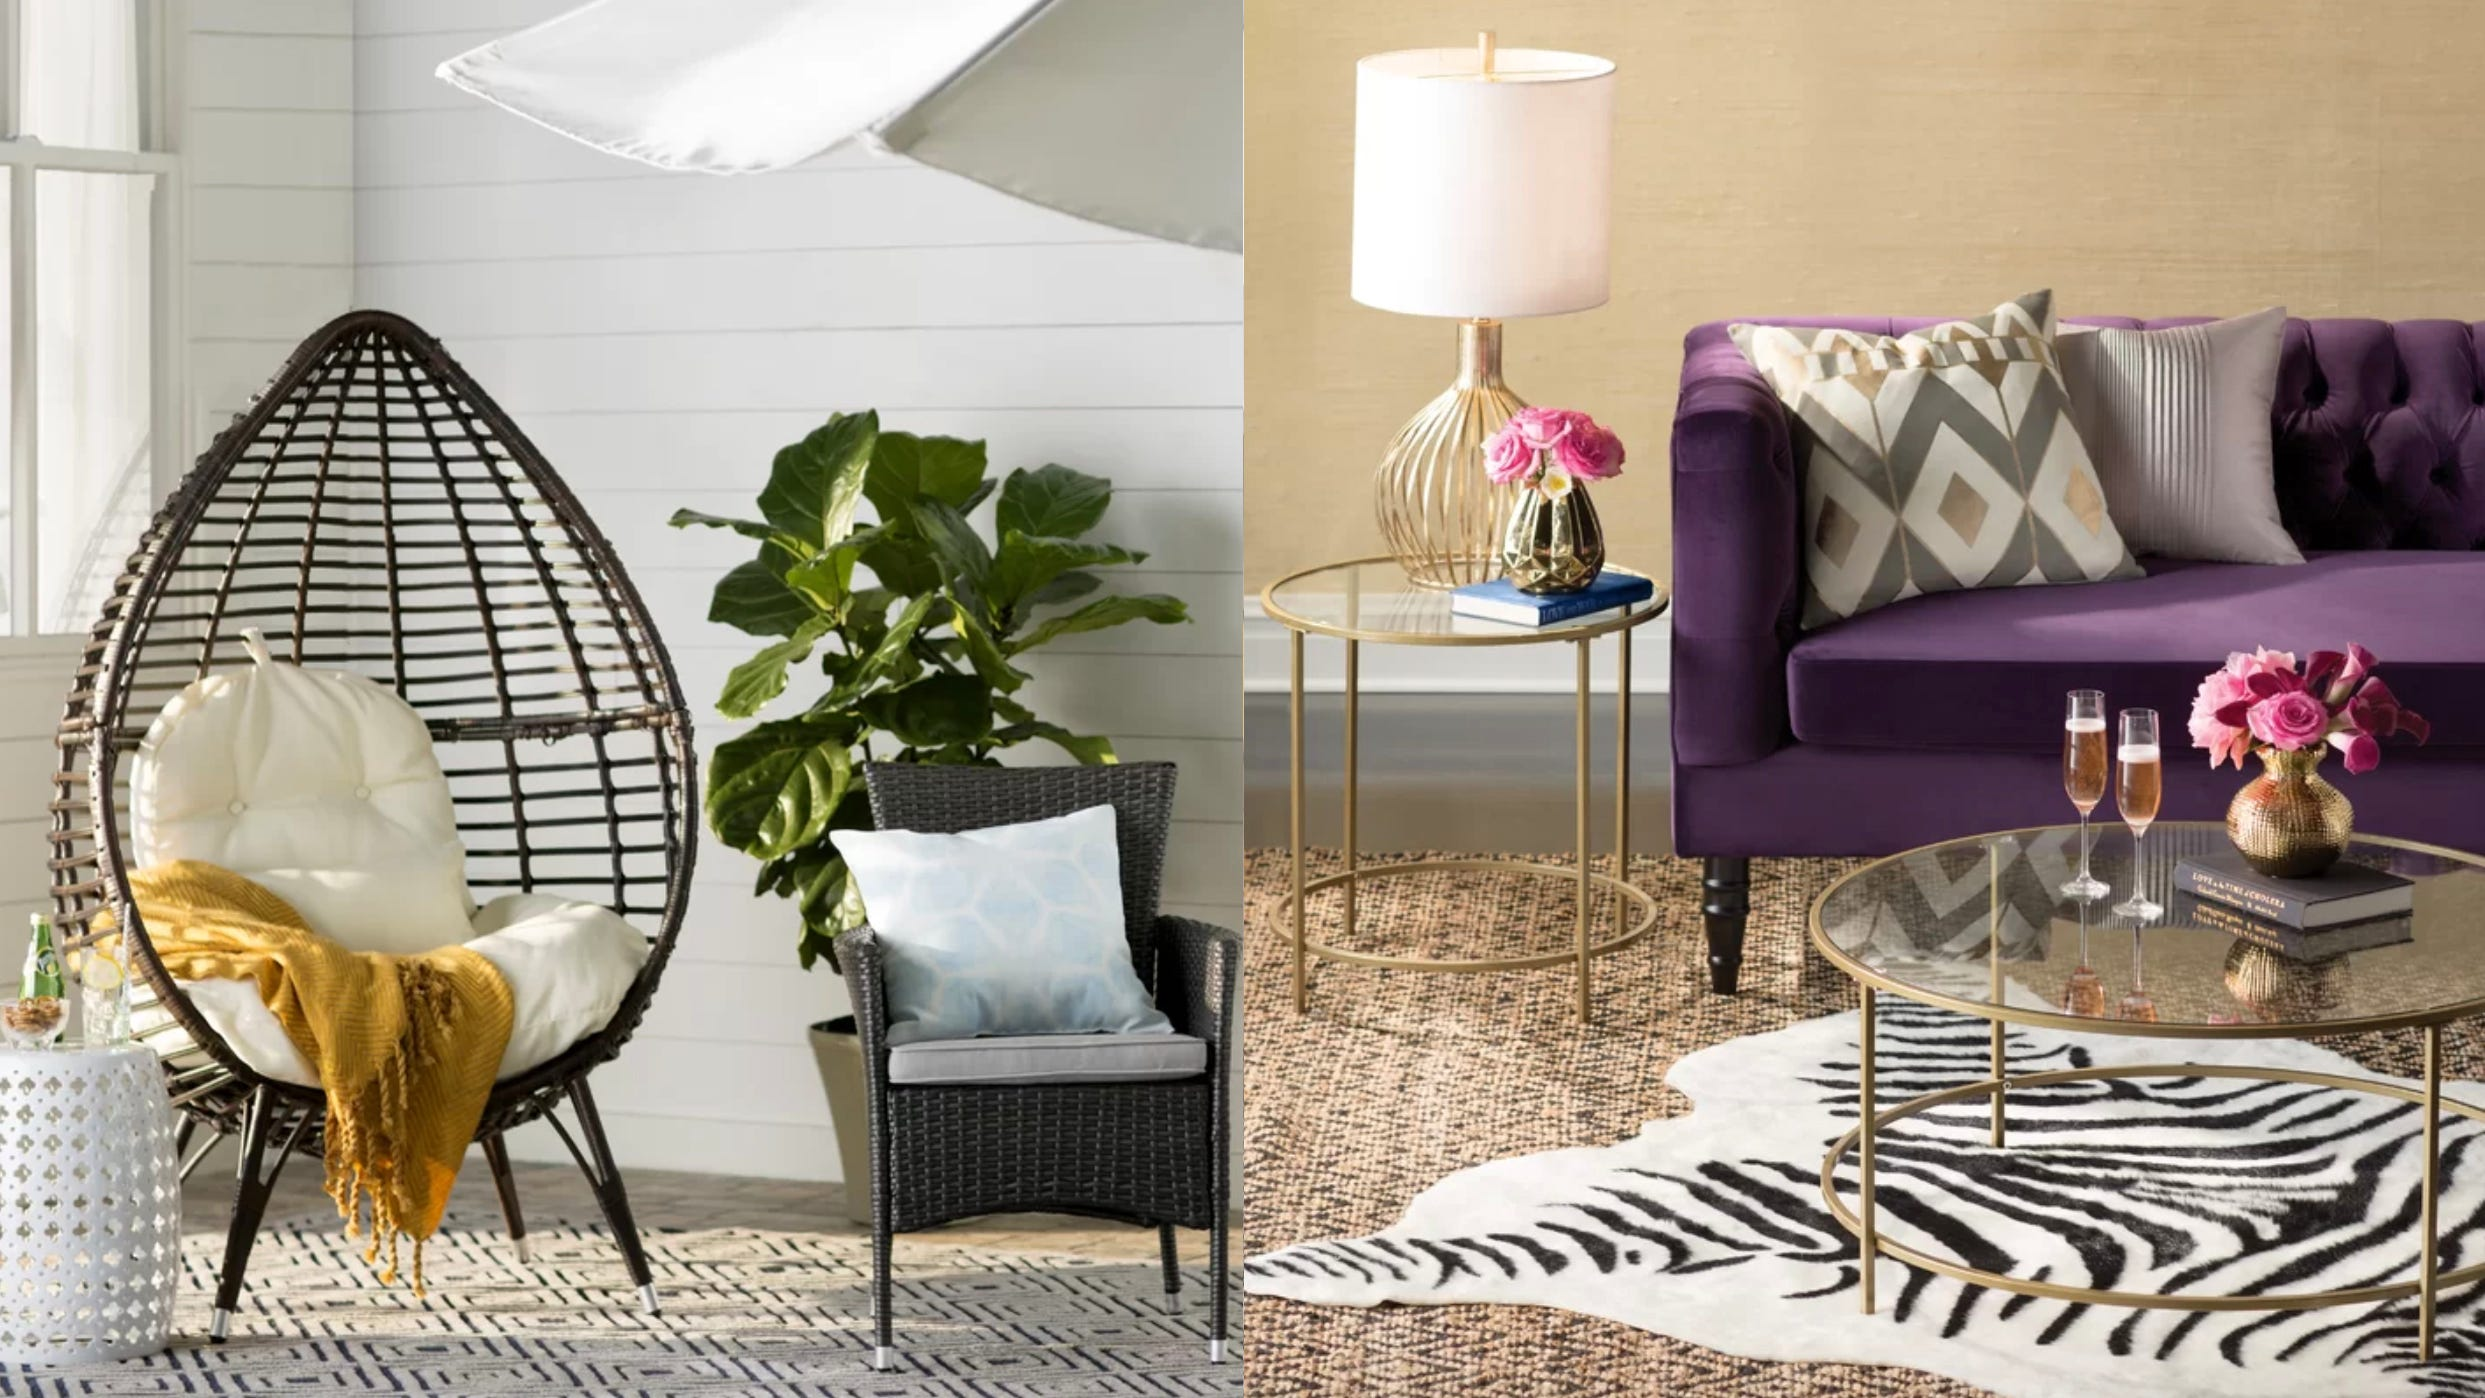 Charmant Get Furniture And Decor At Incredible Prices At Wayfair.